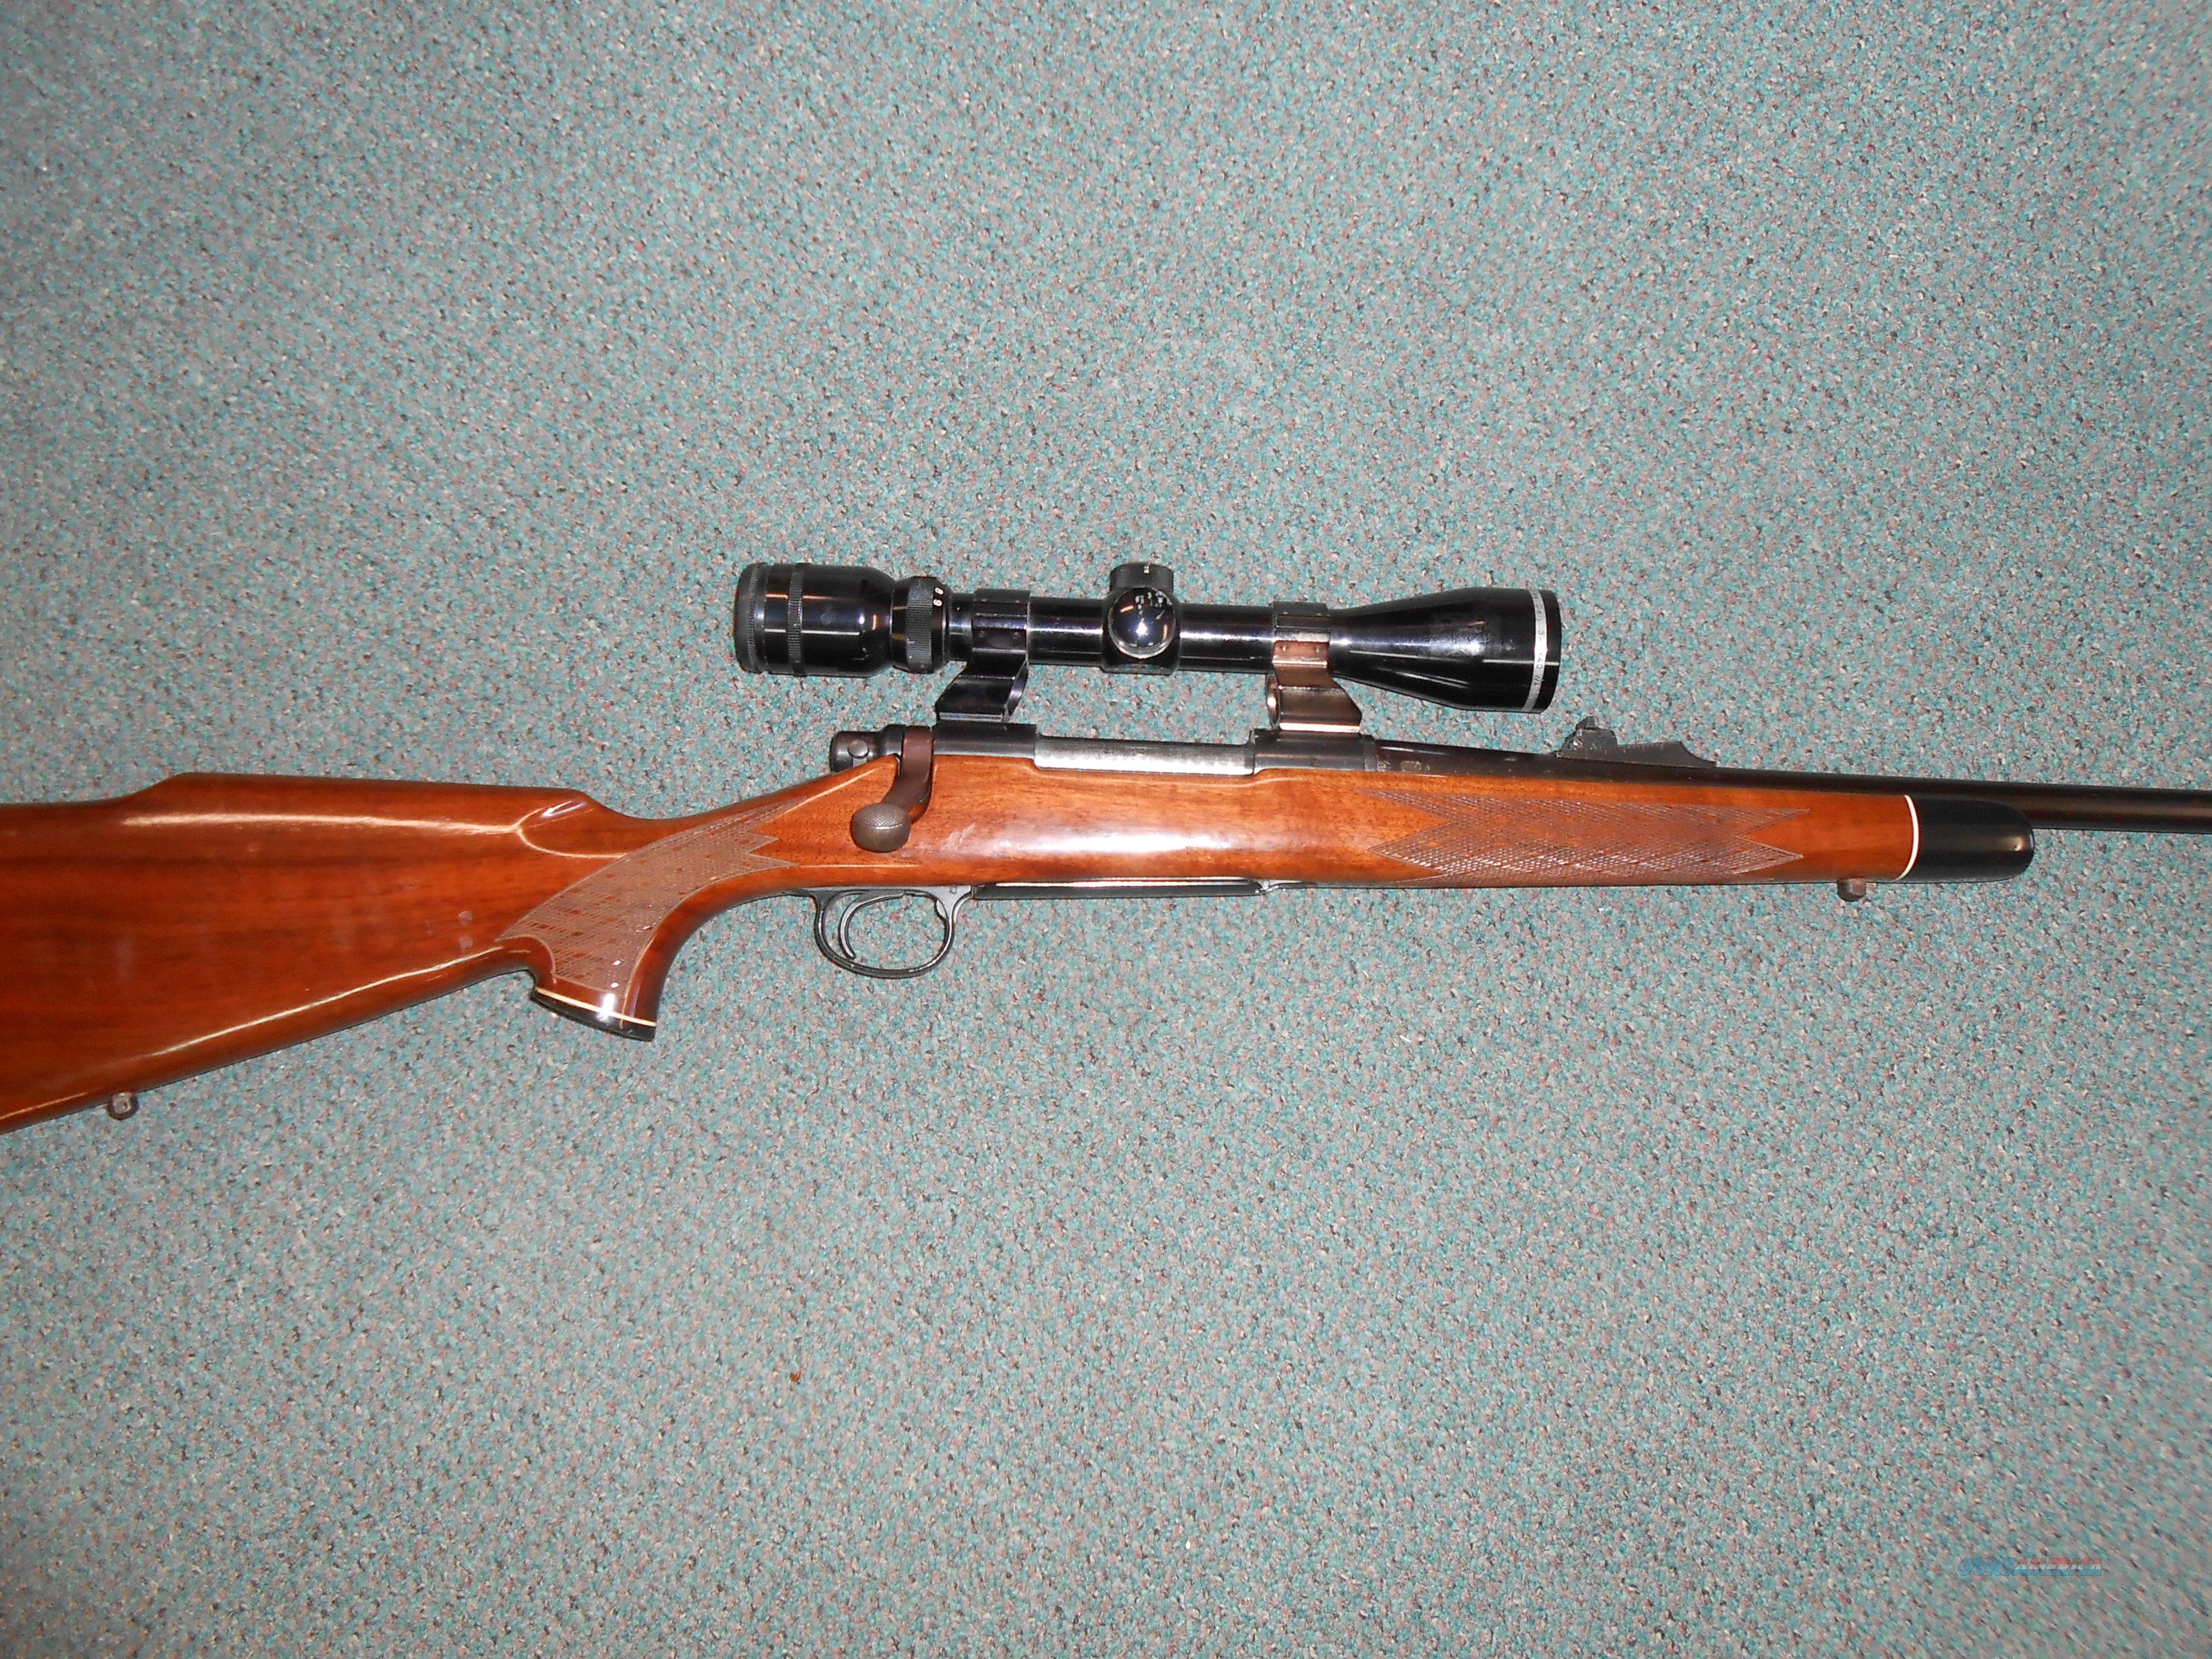 "Remington 700 BDL   24""   .25-06 W' scope  Guns > Rifles > Remington Rifles - Modern > Model 700 > Sporting"